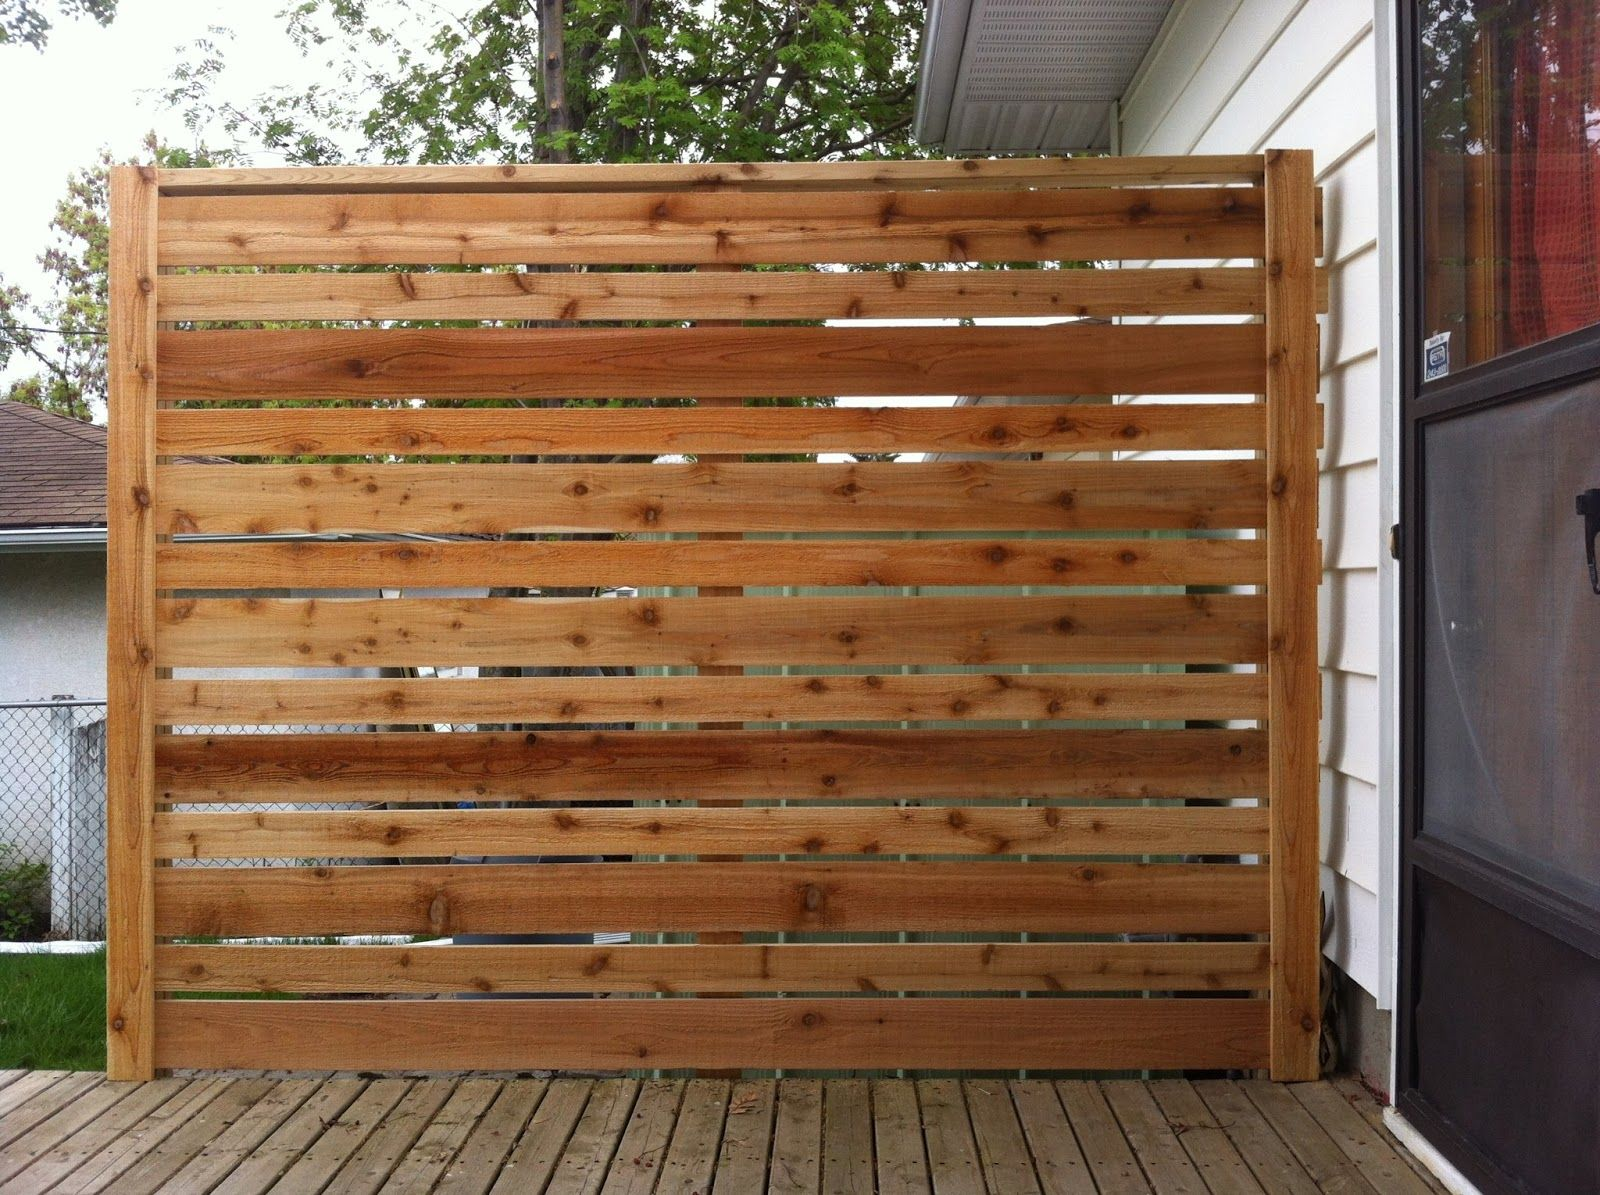 Deck Outdoor Knotty Pine Vintage Outdoor Privacy Screen Deck